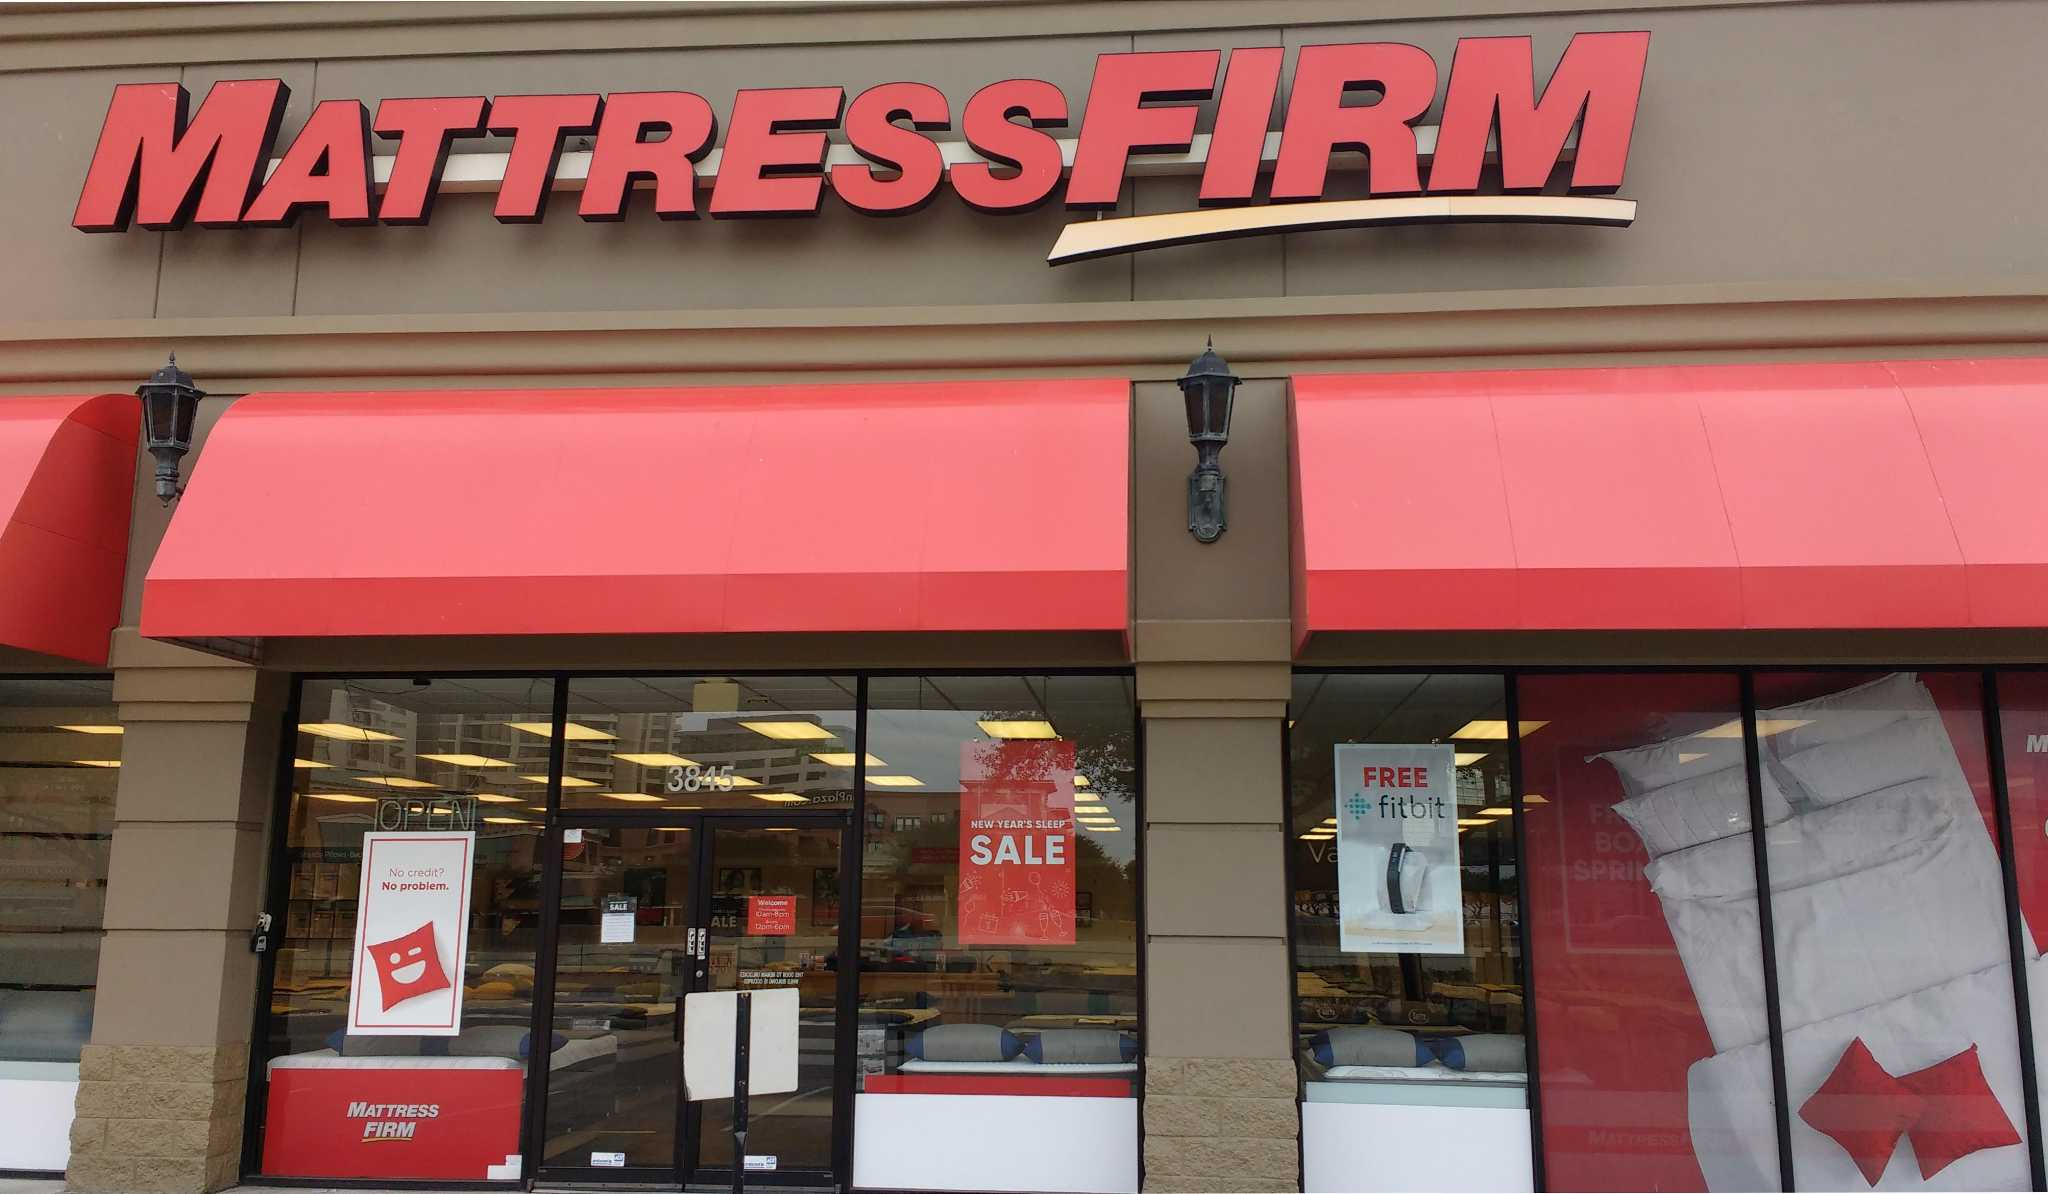 Chapter 11 Mattress Firm Files For Bankruptcy Reorganization